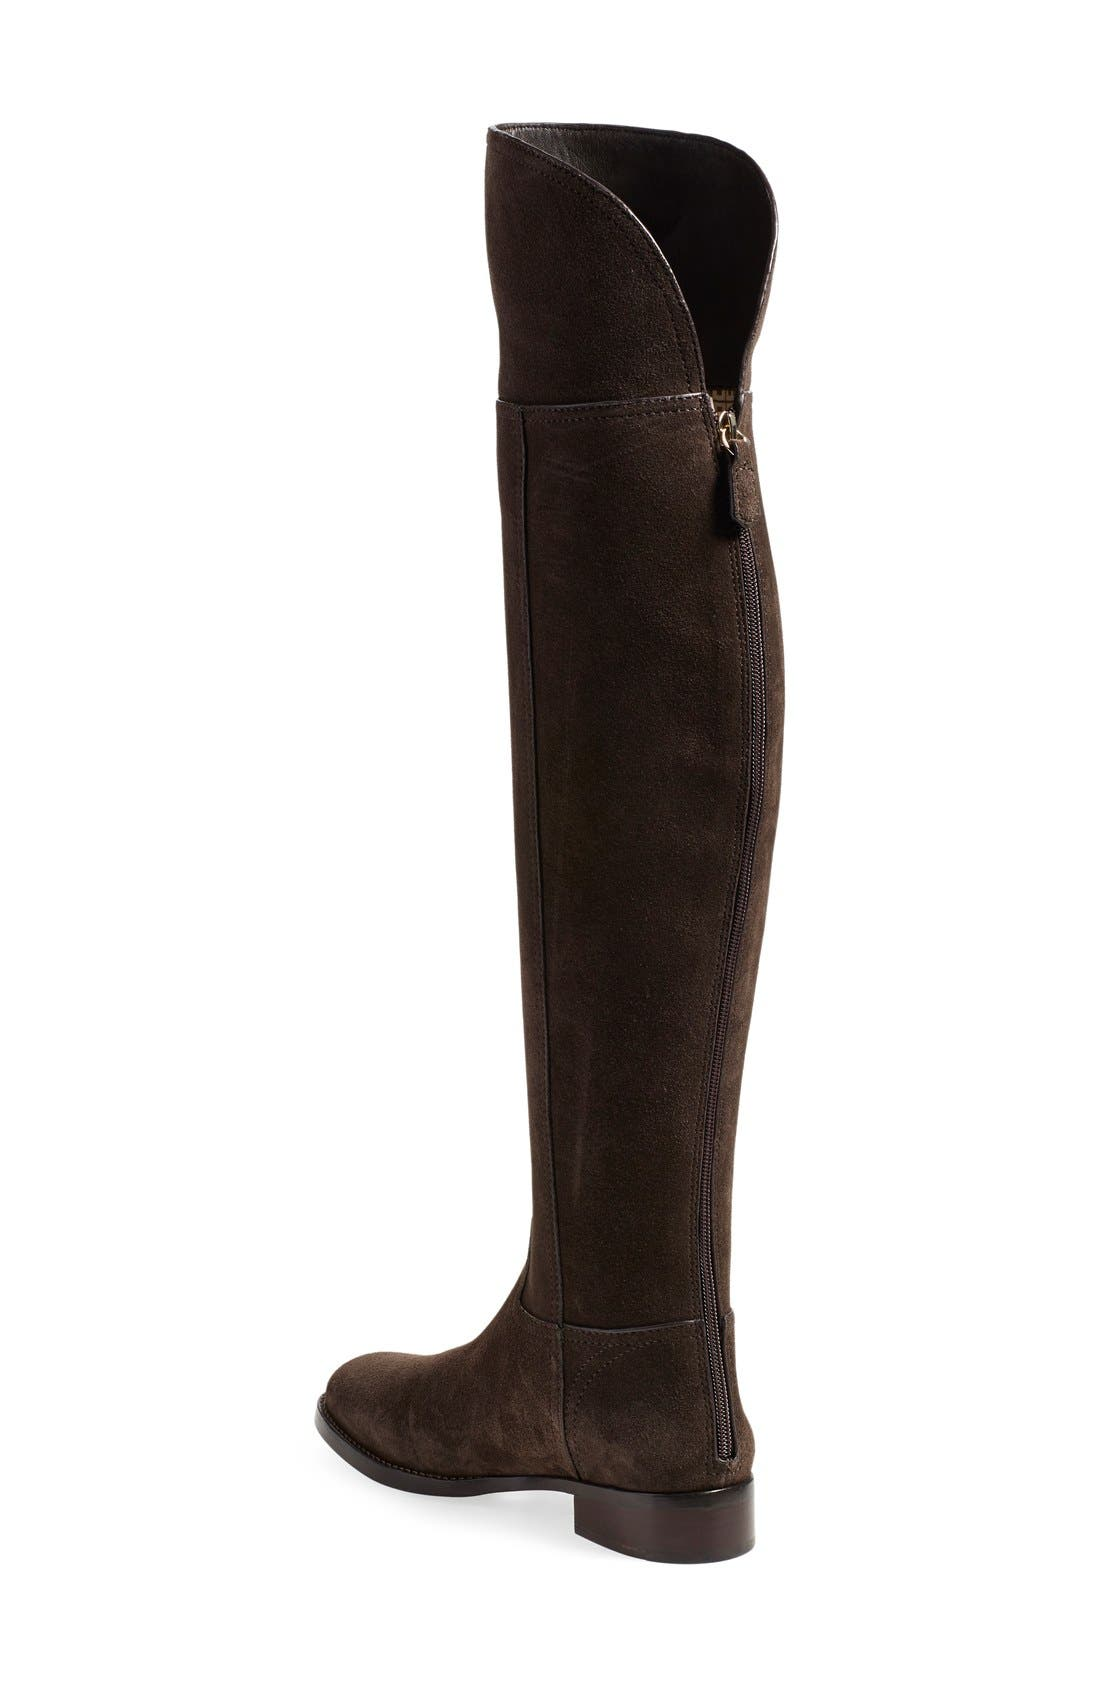 Alternate Image 2  - Tory Burch 'Simone' Over the Knee Boot (Women)